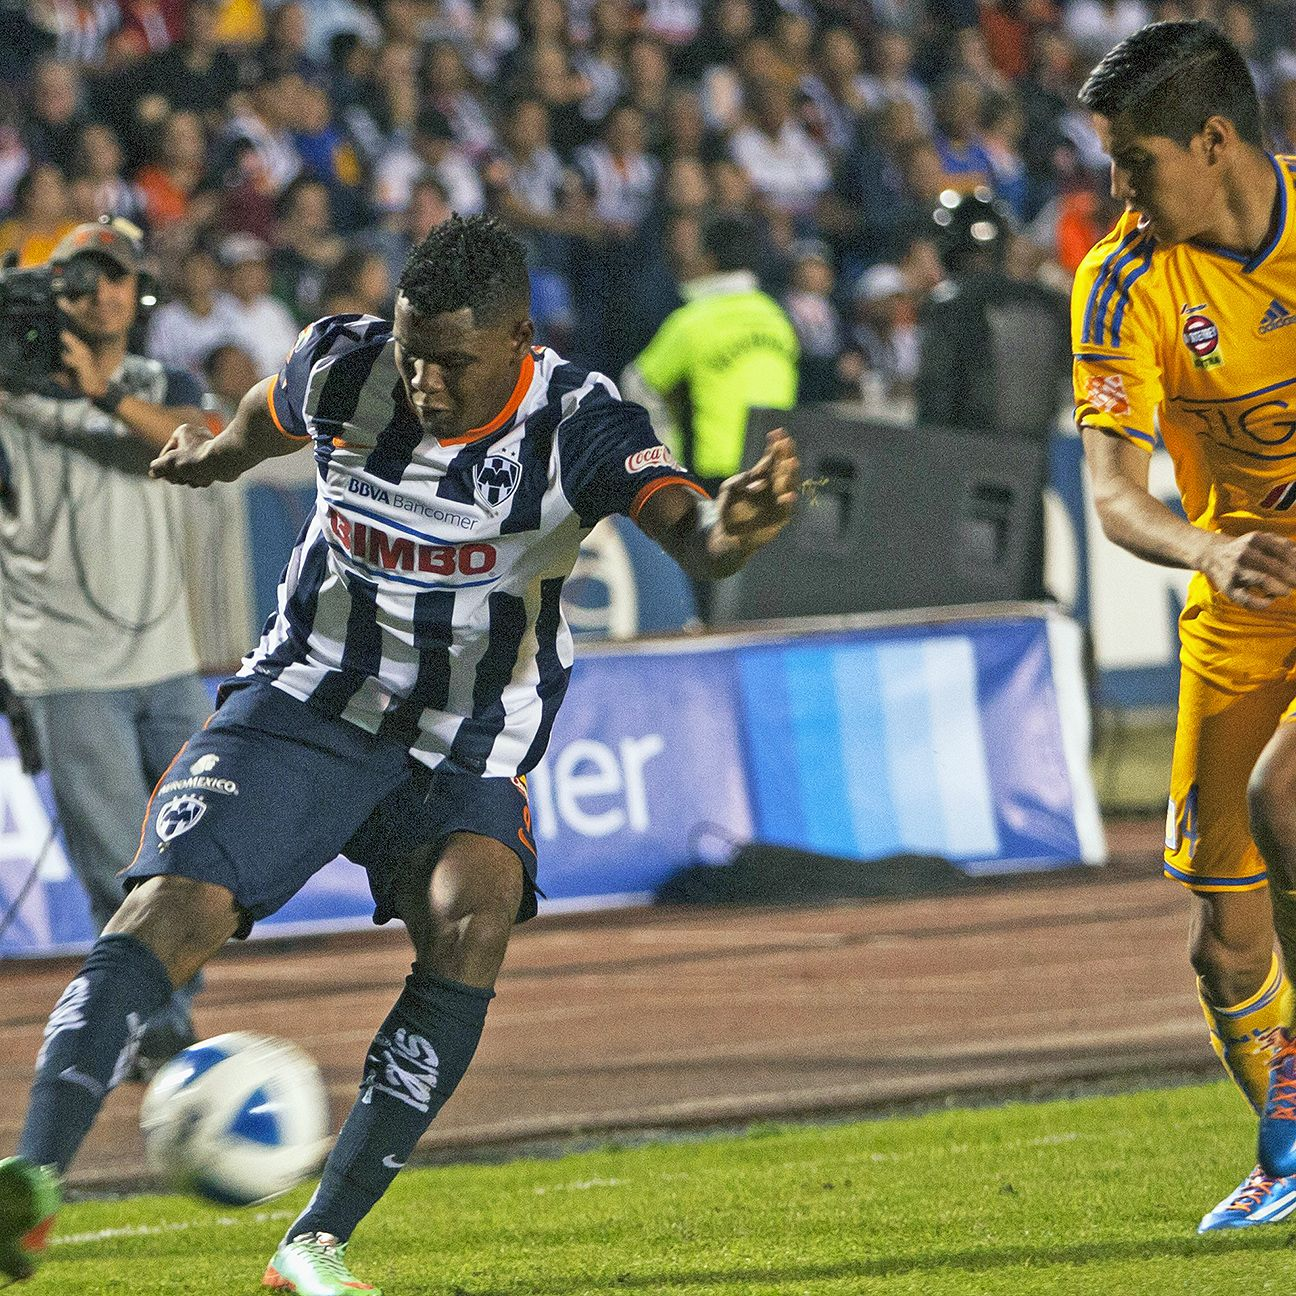 Bragging rights in the city of Monterrey are at stake this weekend with Monterrey and Tigres going at it in the